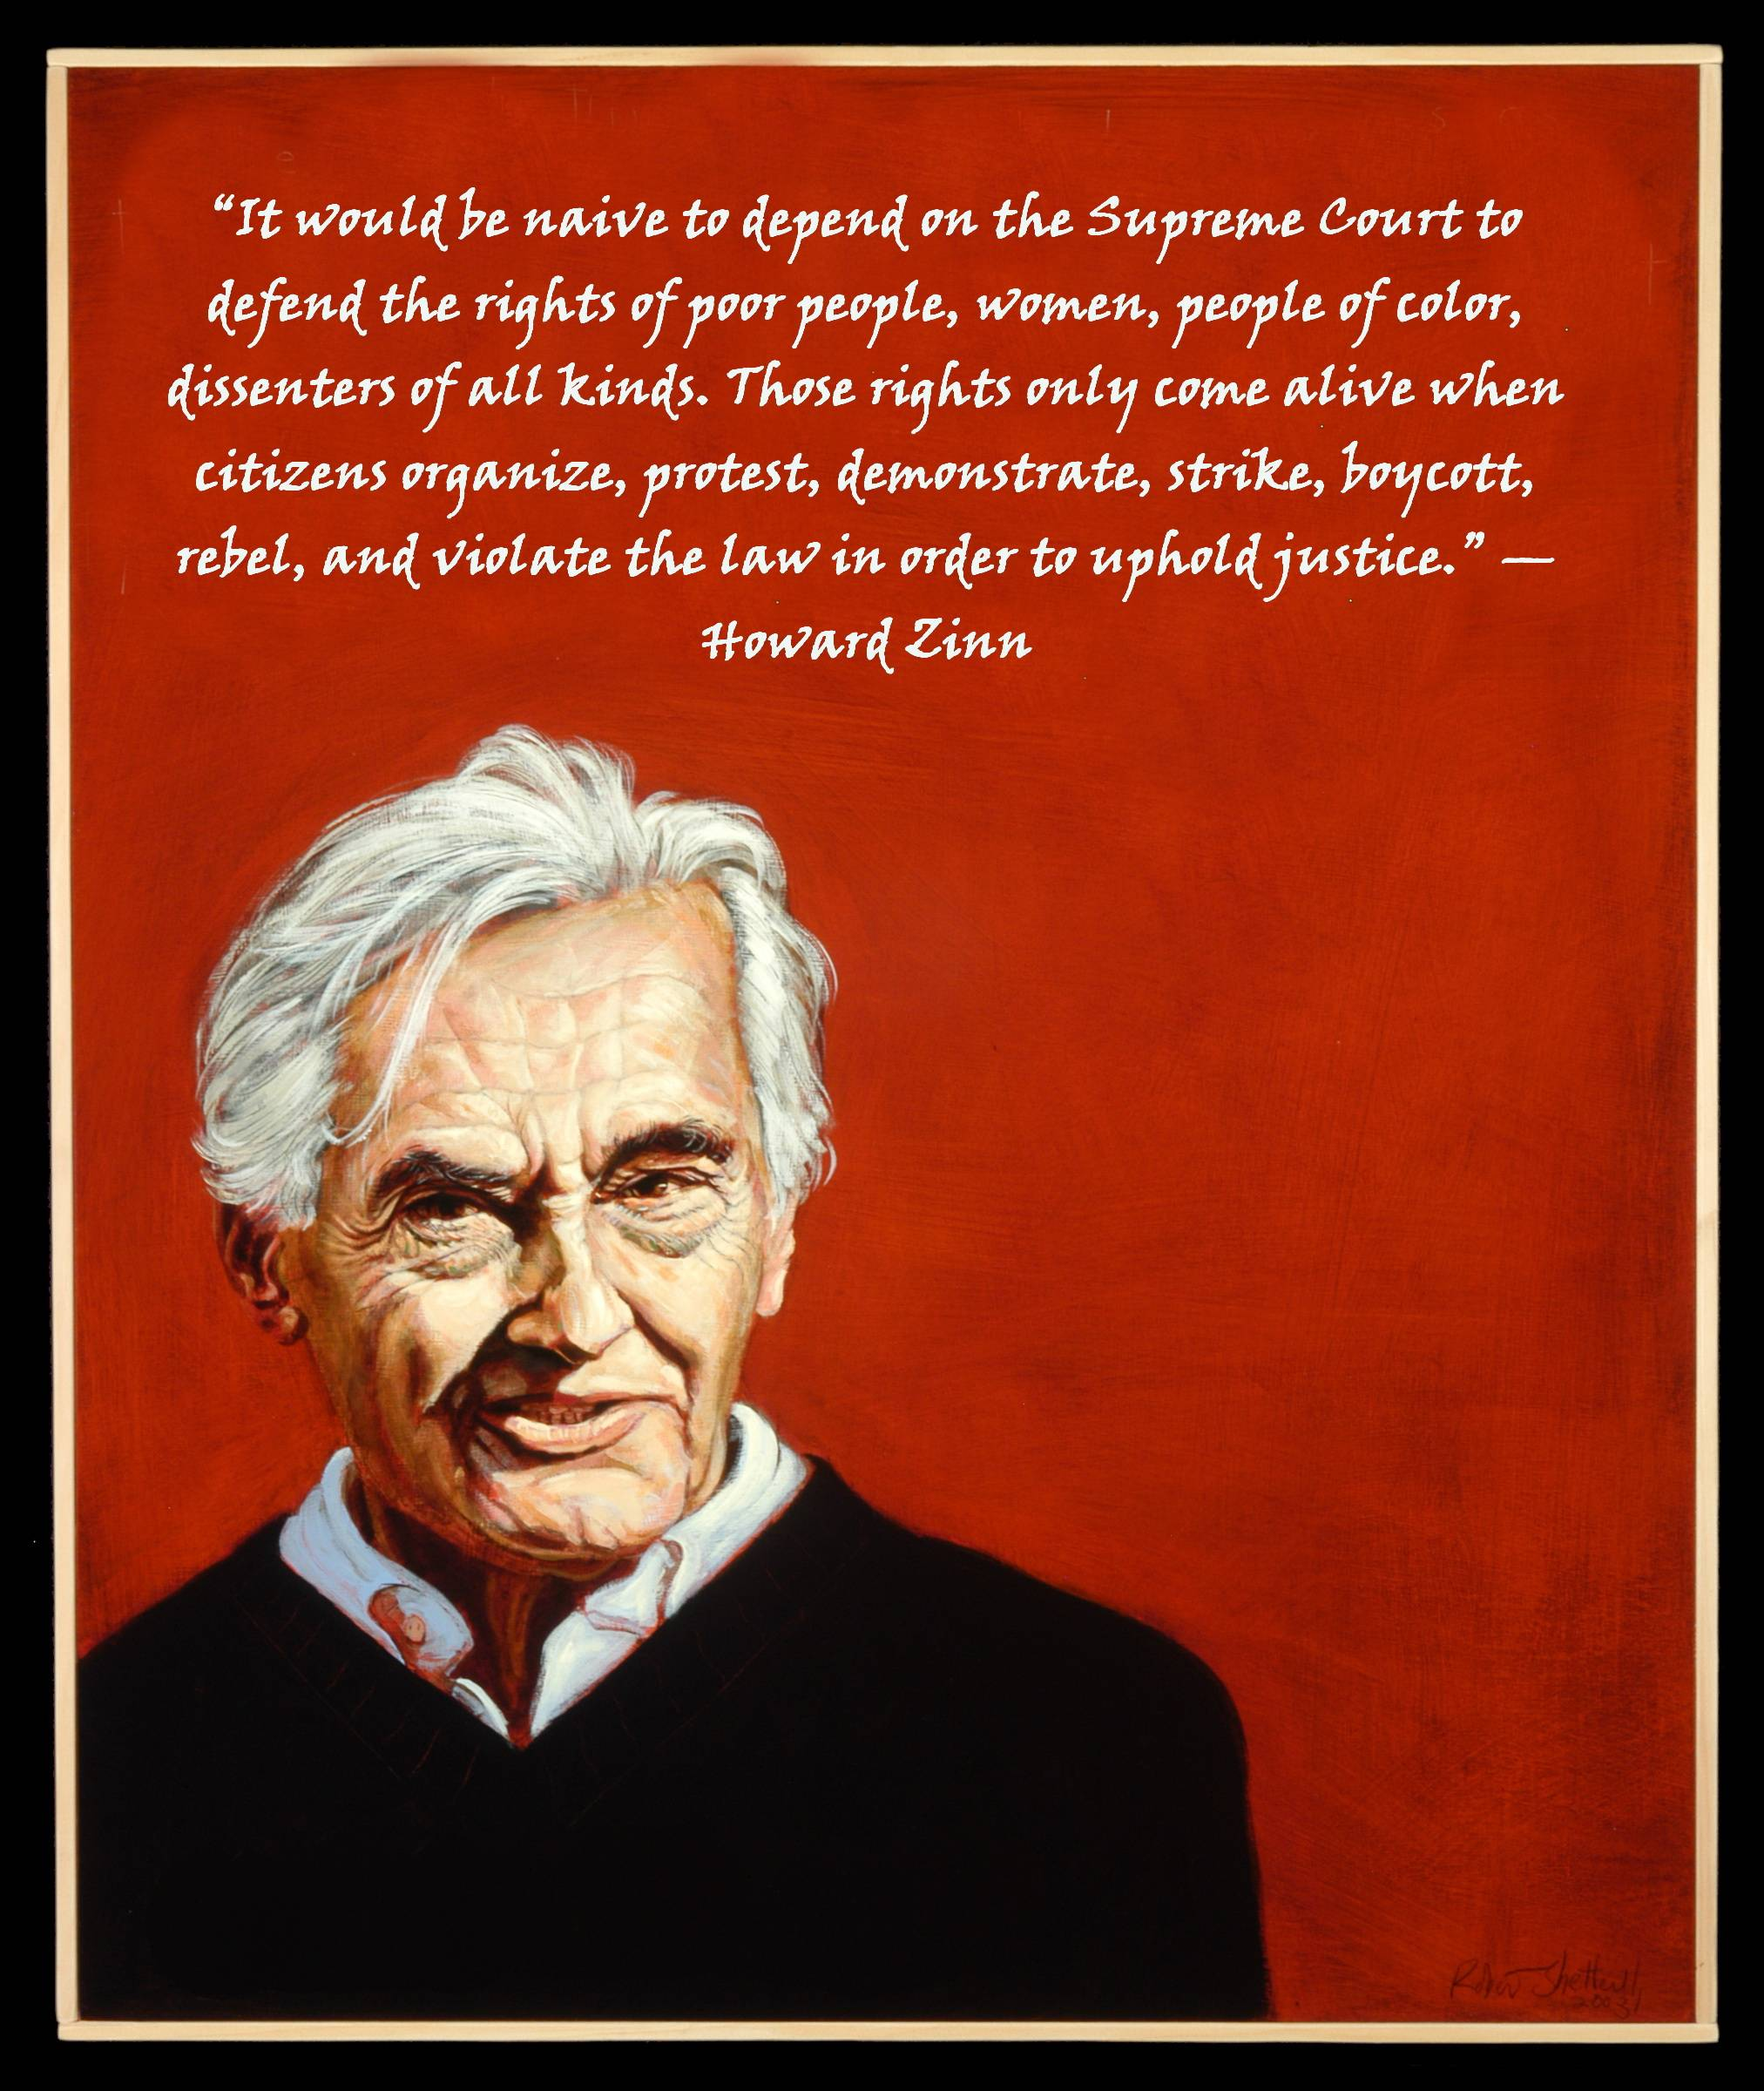 """It would be naive to depend on the Supreme Court to defend the rights of poor people, women, people of color, dissenters of all kinds. Those rights only come alive when citizens organize, protest, demonstrate, strike, boycott, rebel, and violate the law…."" — Howard Zinn [2025 x 2400]"